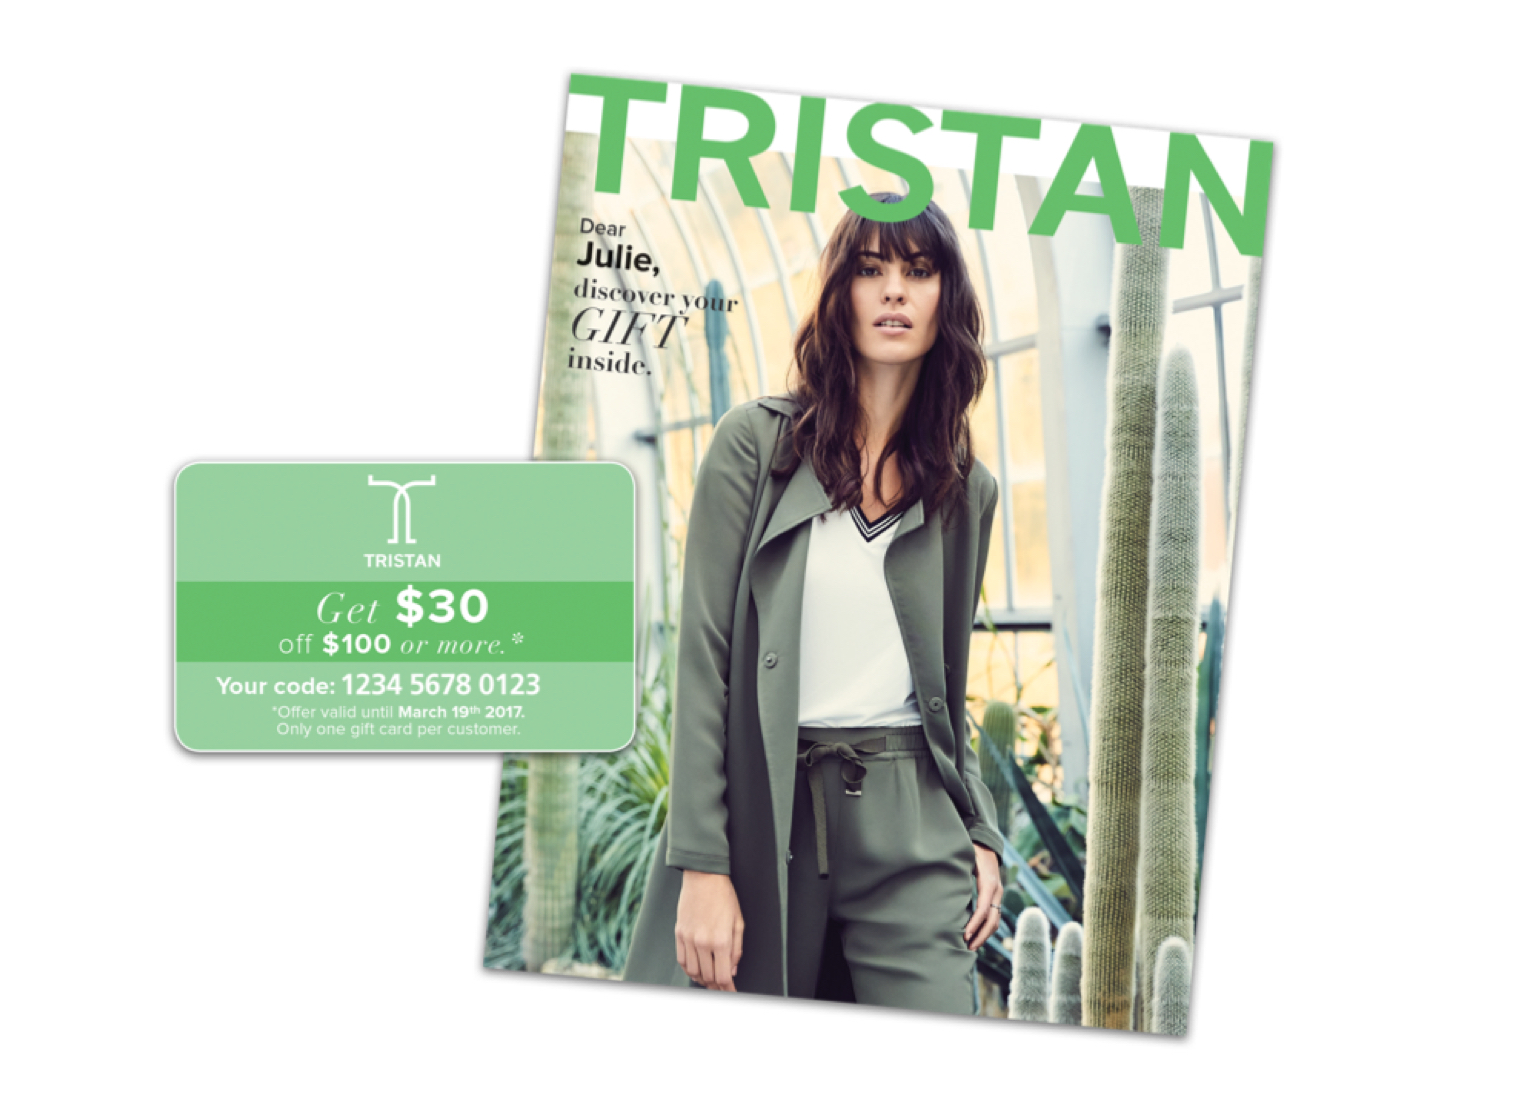 A catalogue design example from clothing brand, Tristan.